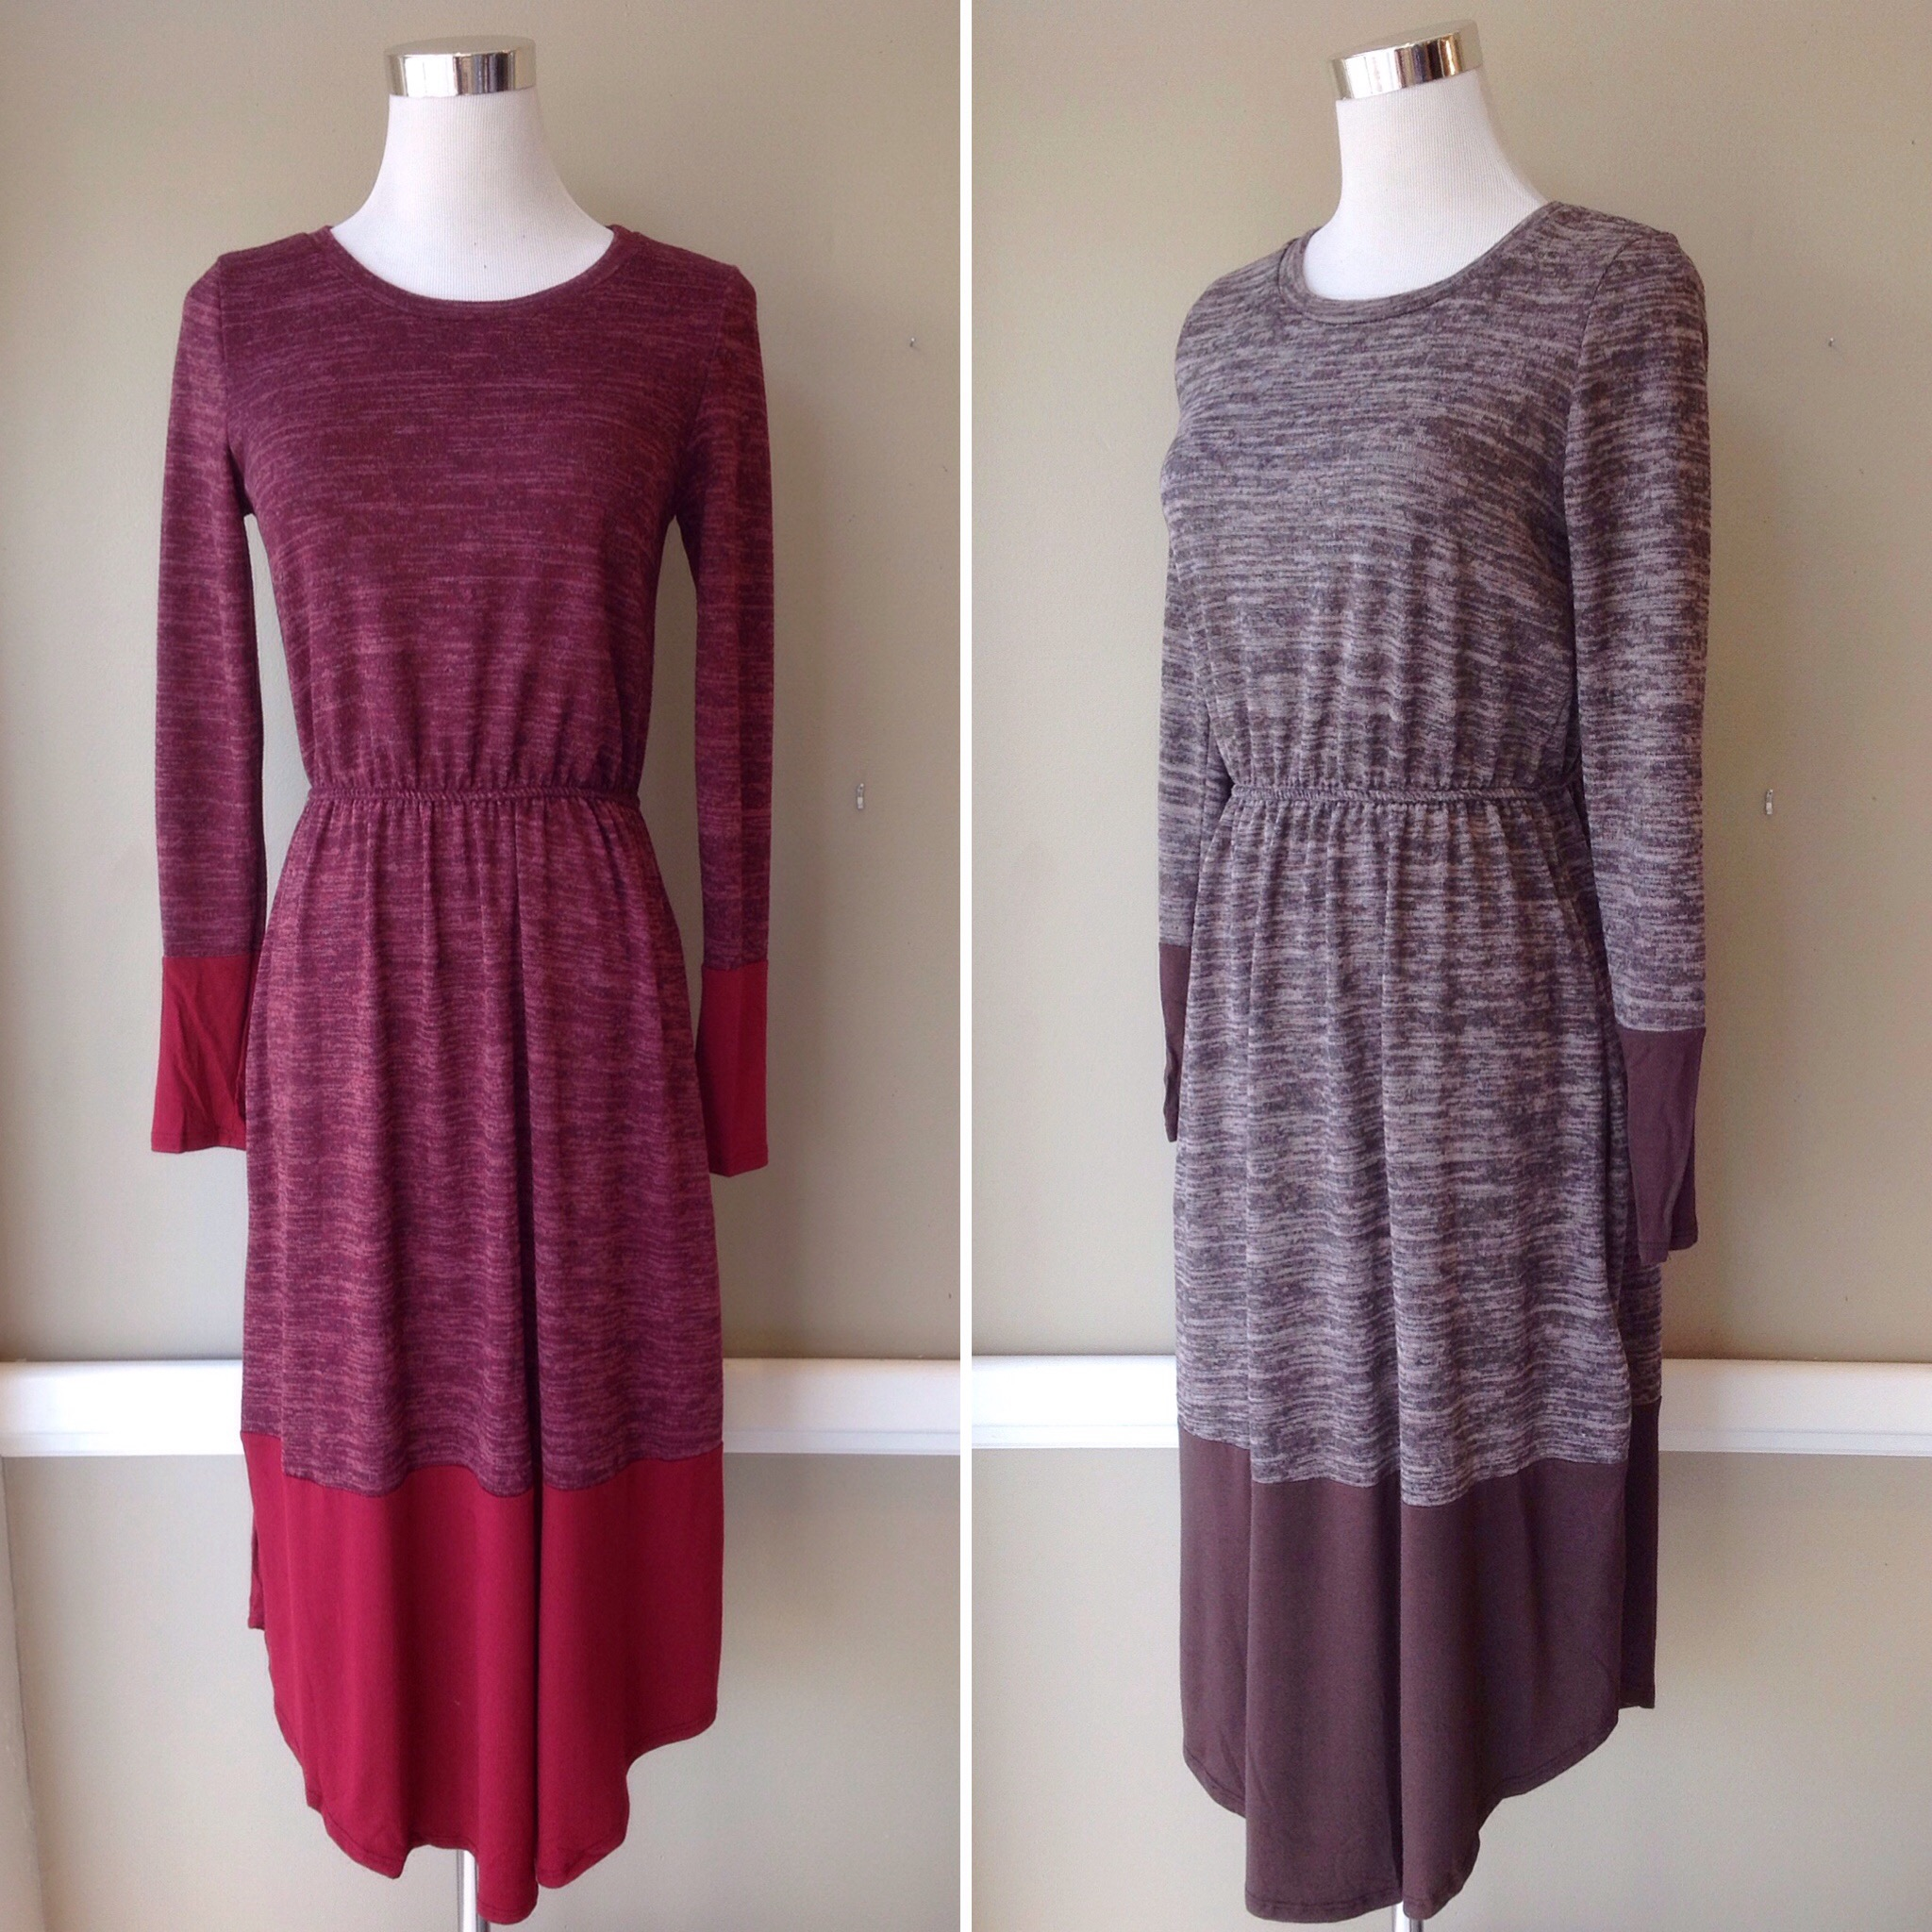 Tri brushed sweater dress with contrasting knit and side seam pockets, $42. Available in mocha and burgundy.